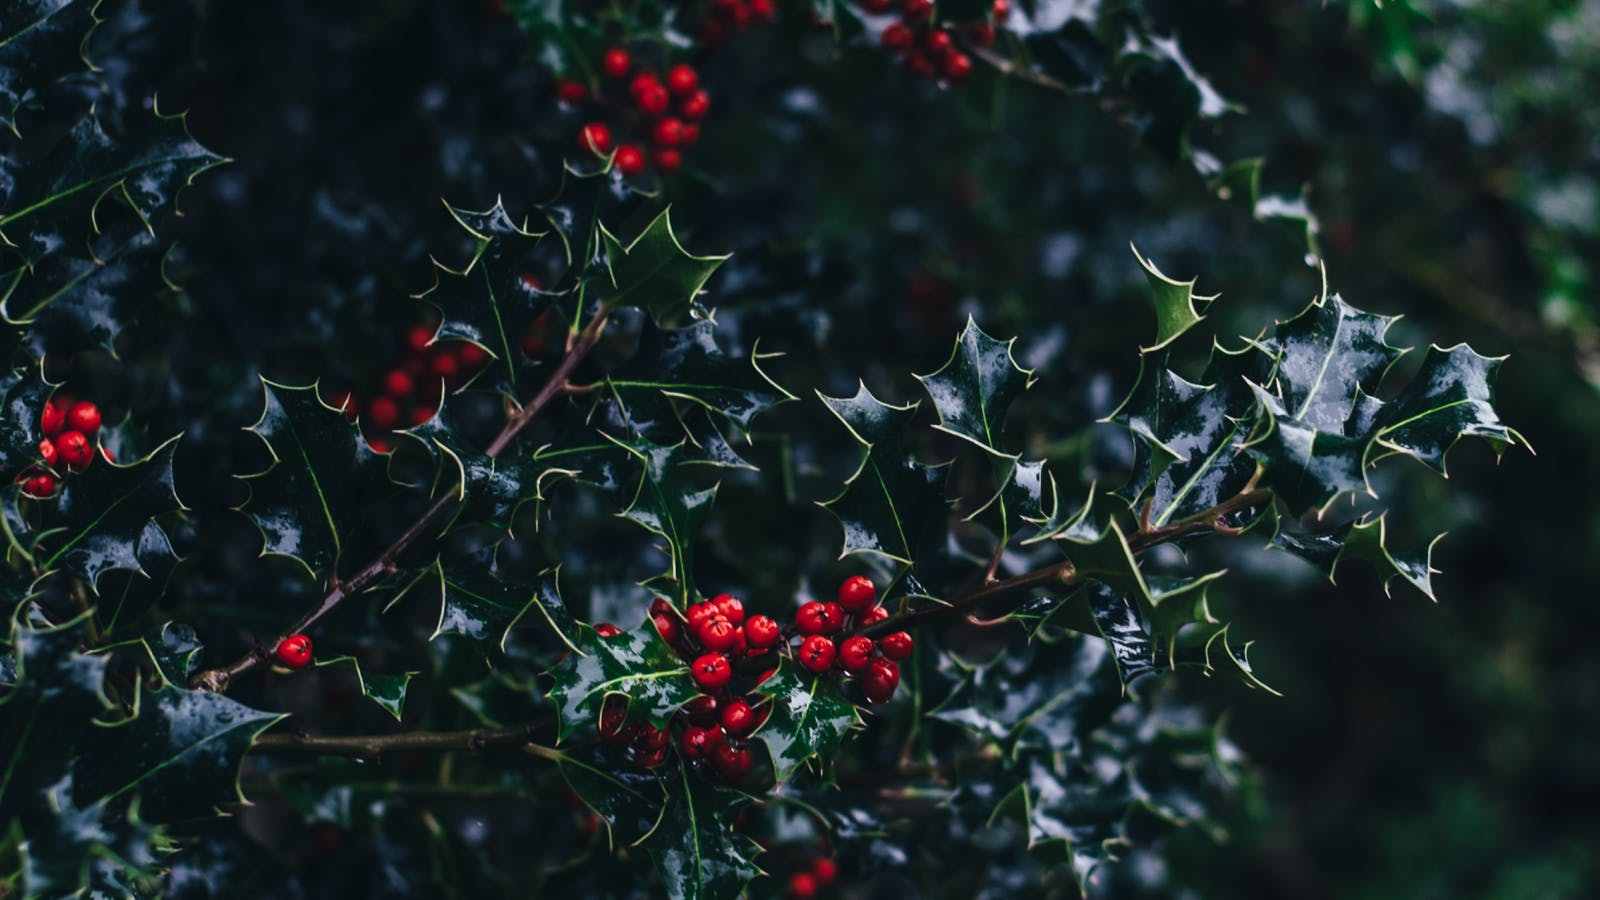 Does Christmas Create Racial Tensions? (Special Episode)